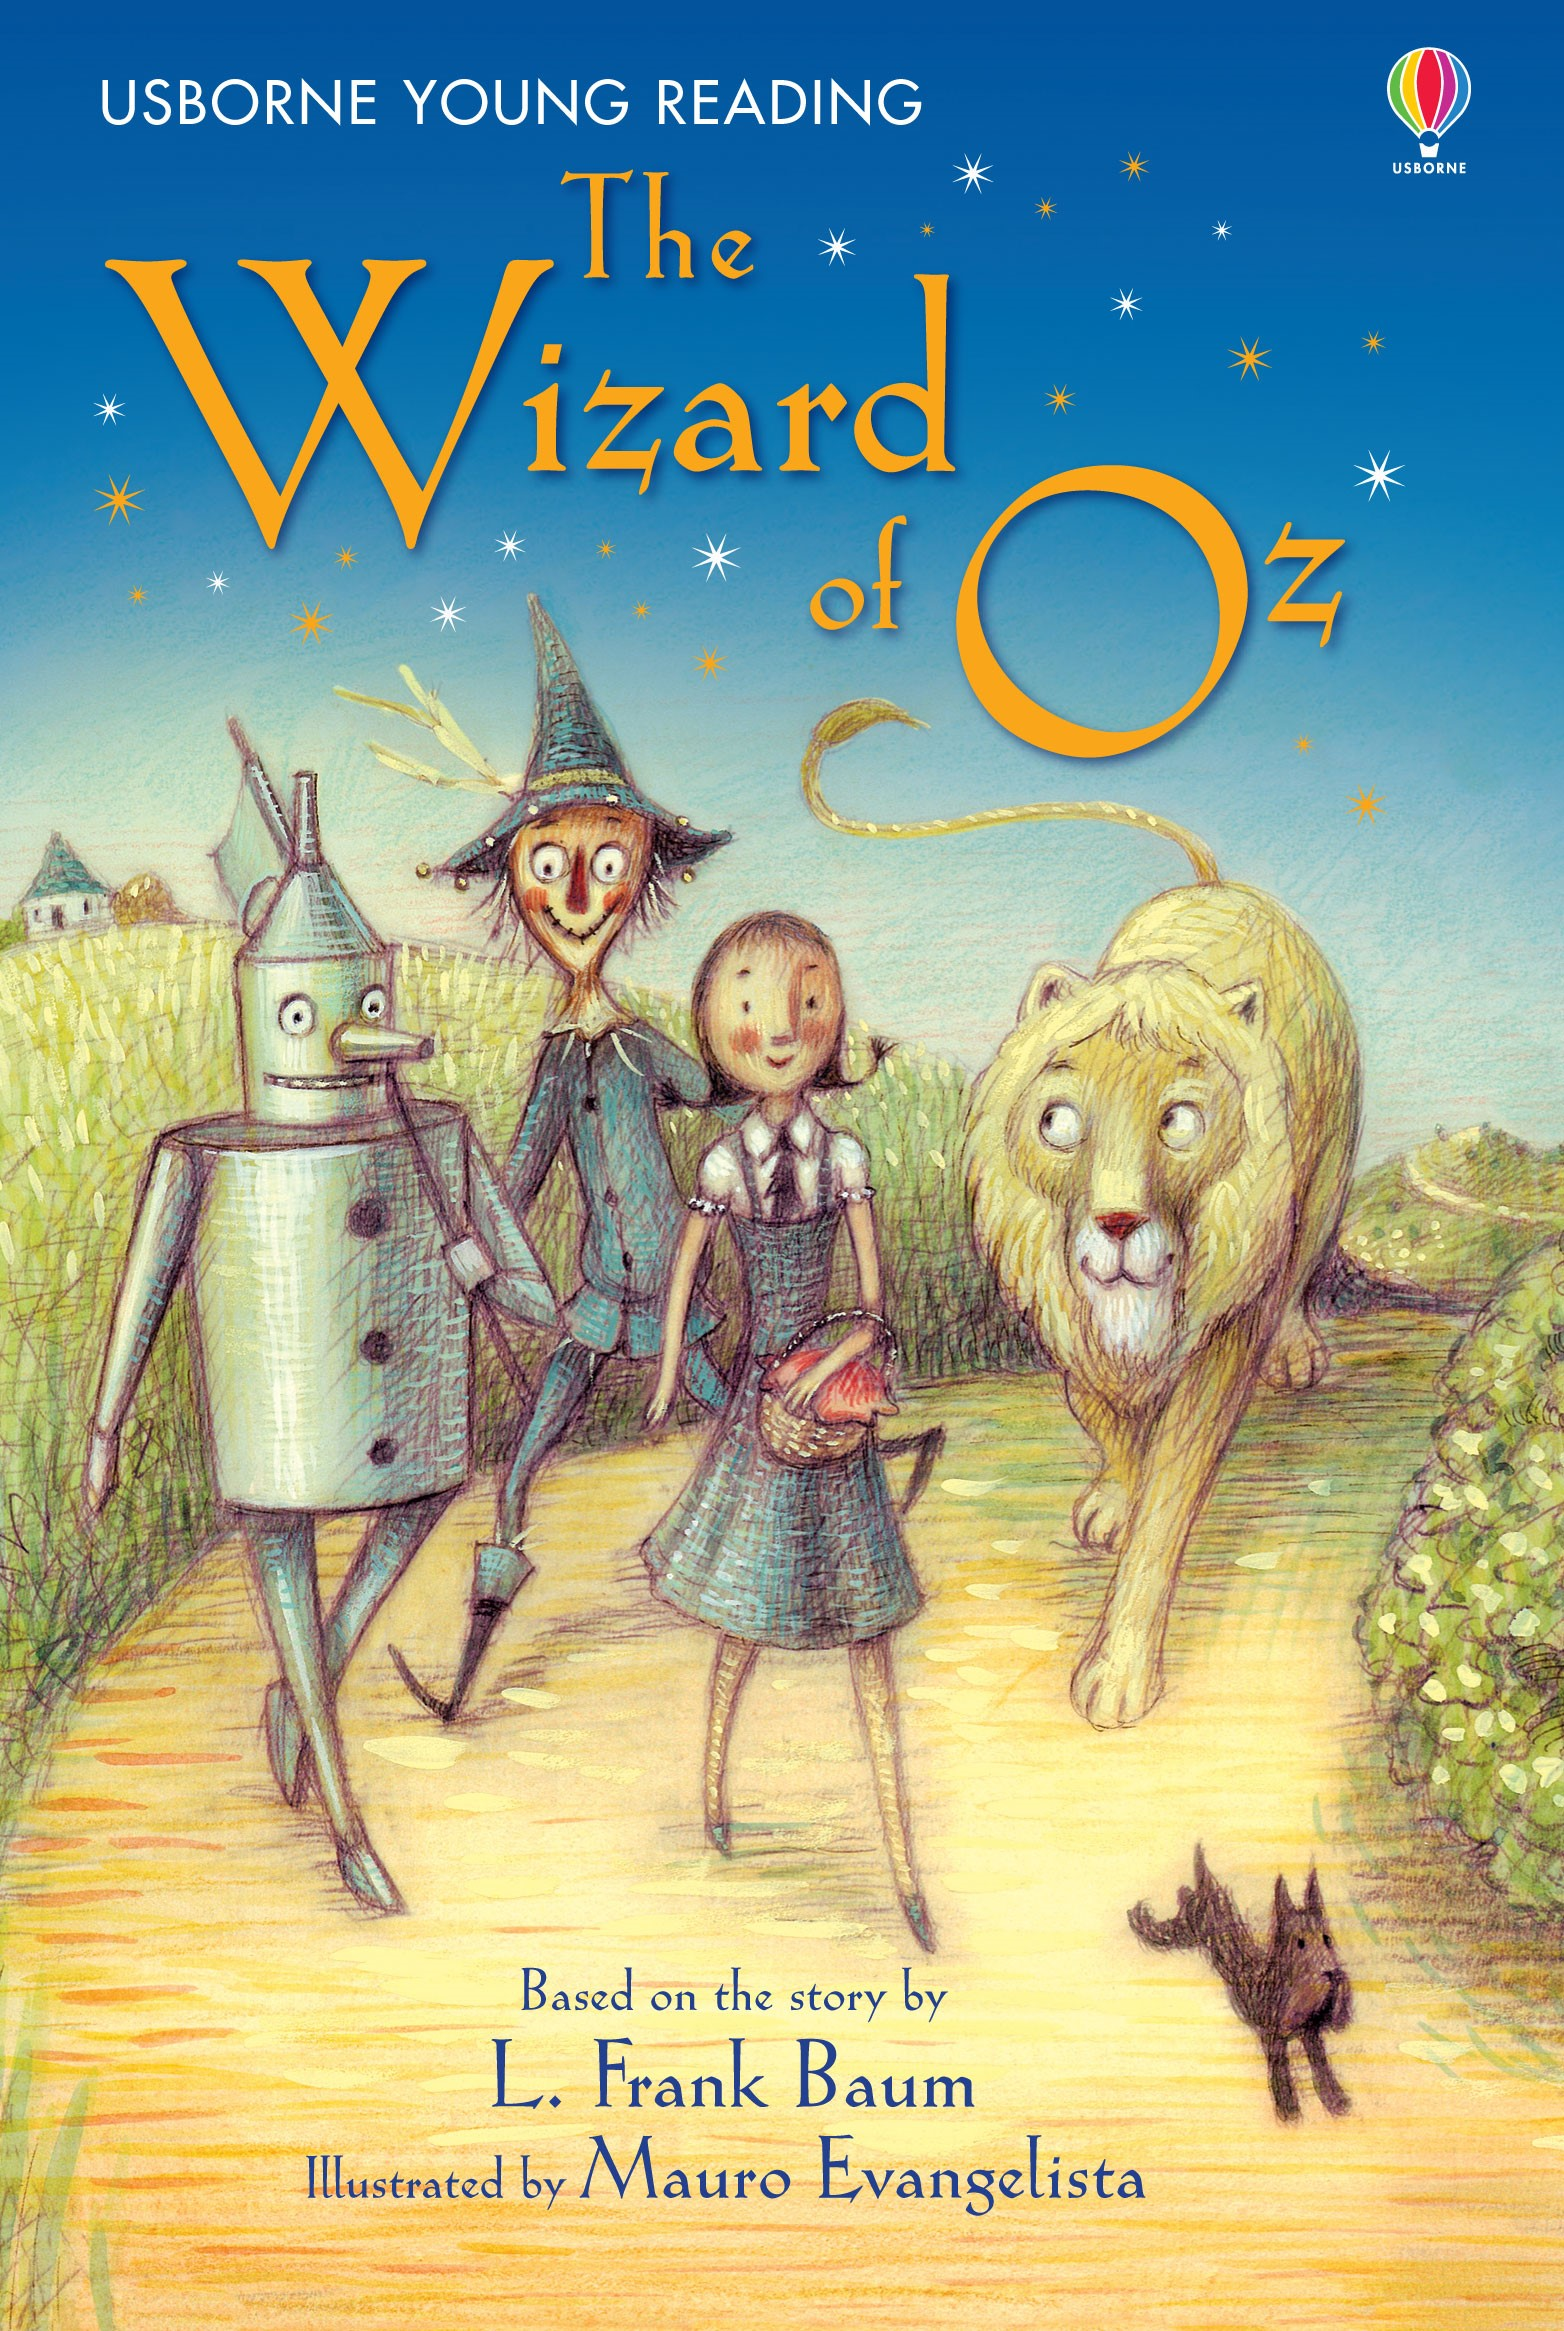 a summary of the wizard of oz by l frank baum Summary: does anyone not know l frank baum explains that he wrote the wonderful wizard of oz as a fairy tale for modern children.